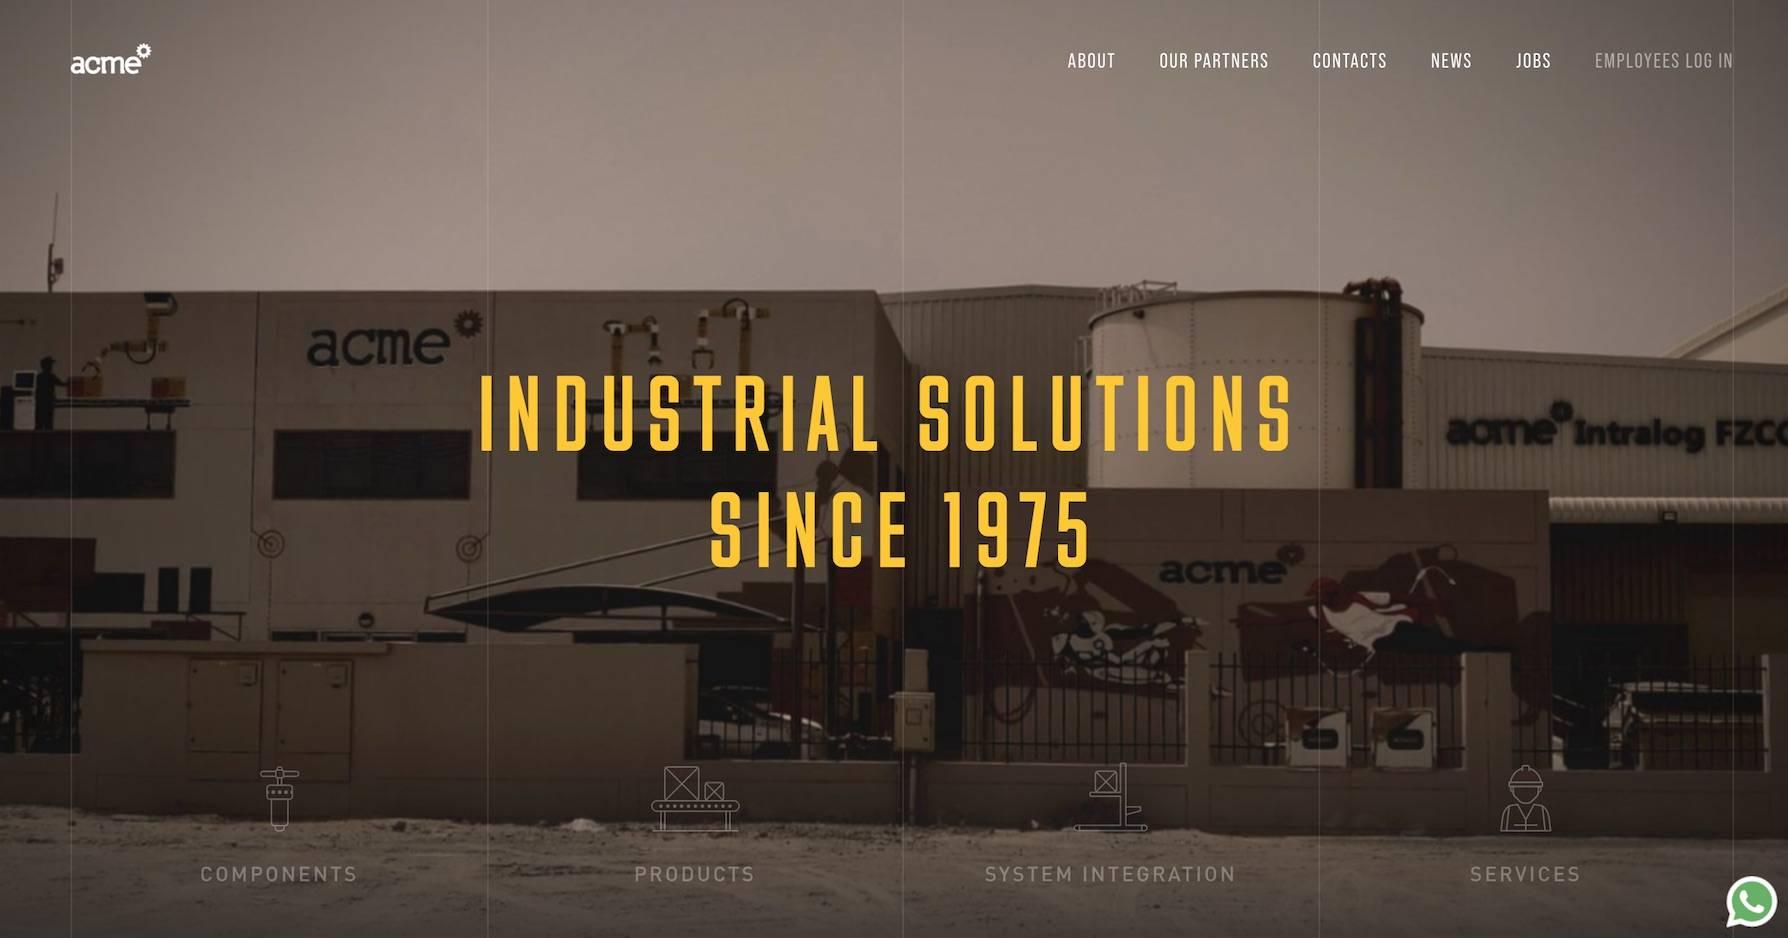 the b2b website home page for Acme that features functional minimalism in its web design